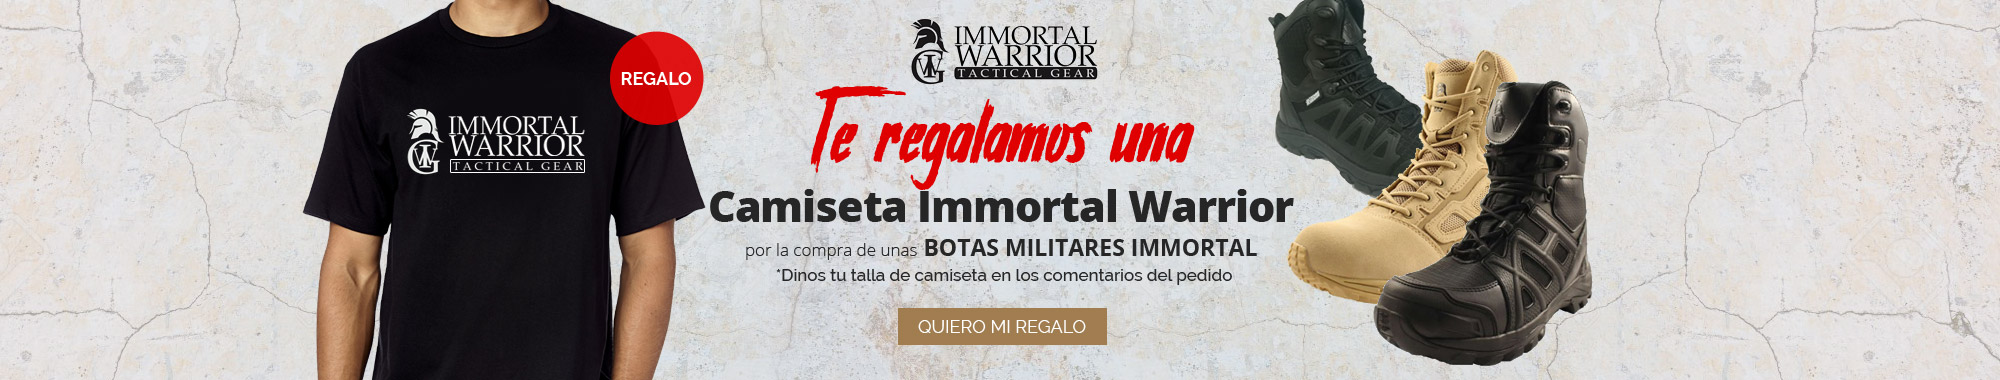 Regalo camiseta Immortal